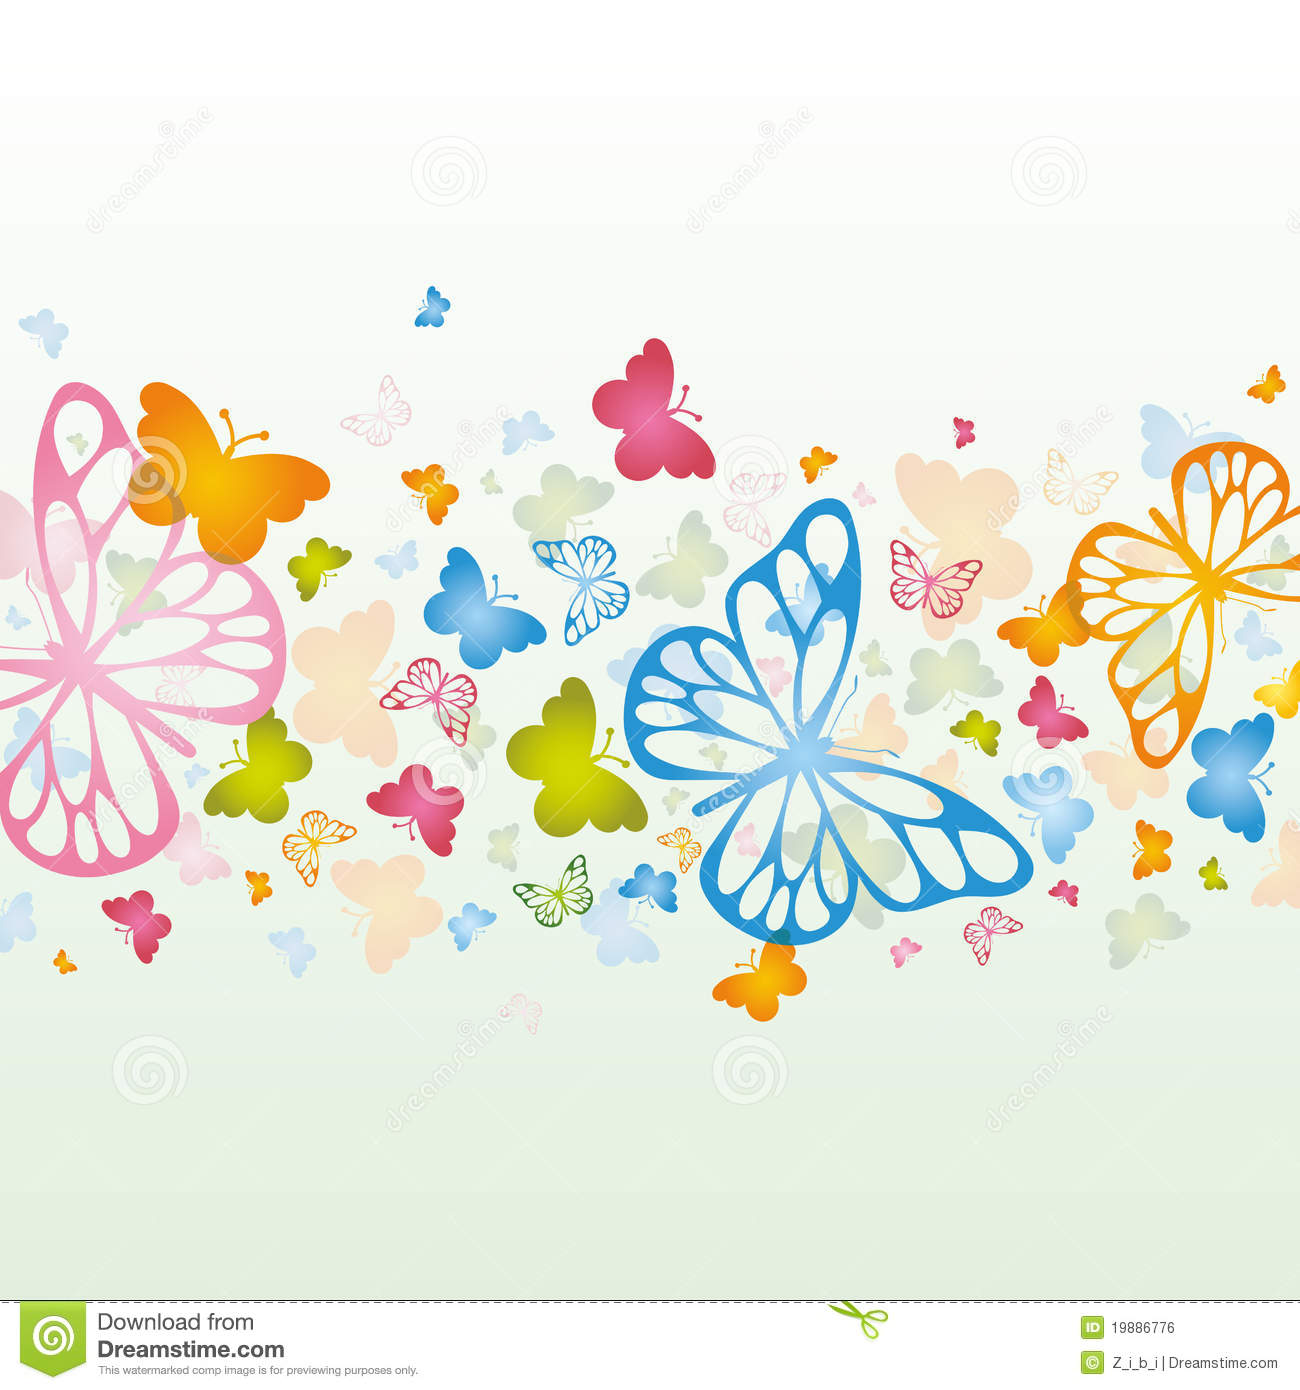 Butterfly Background Royalty Free Stock Image - Image: 19886776